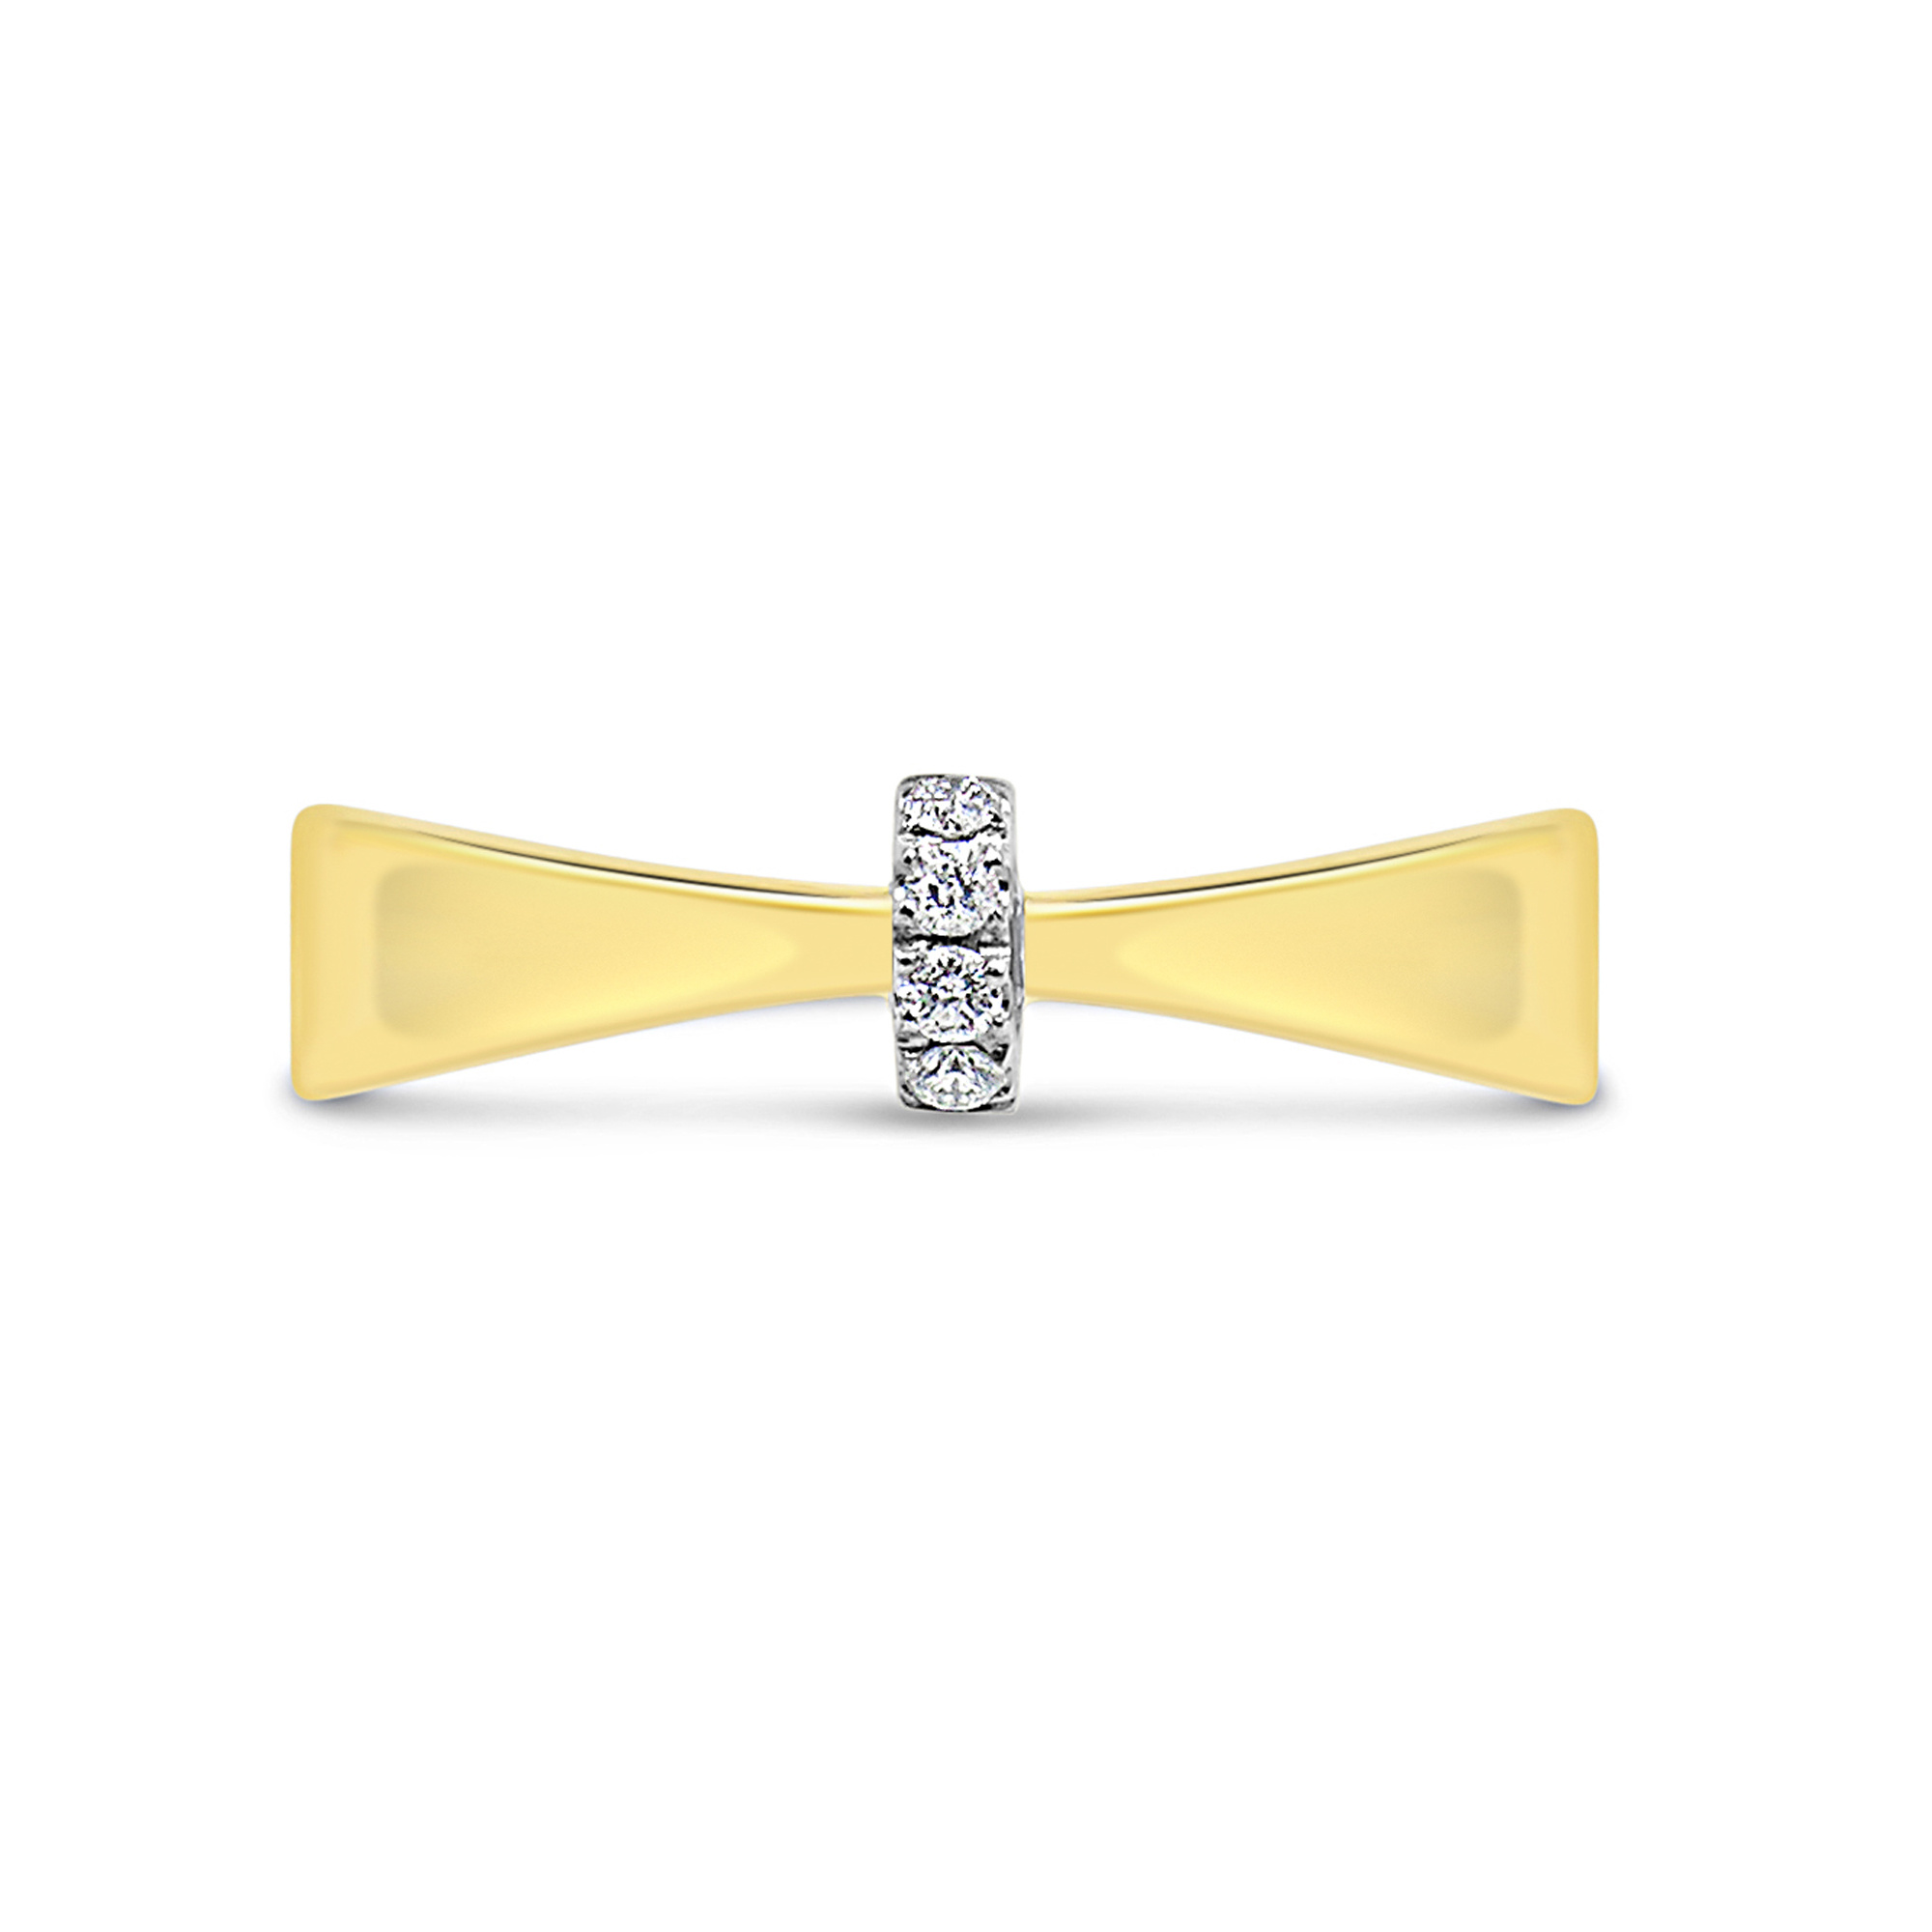 18kt yellow gold ring with 0.04 ct diamonds